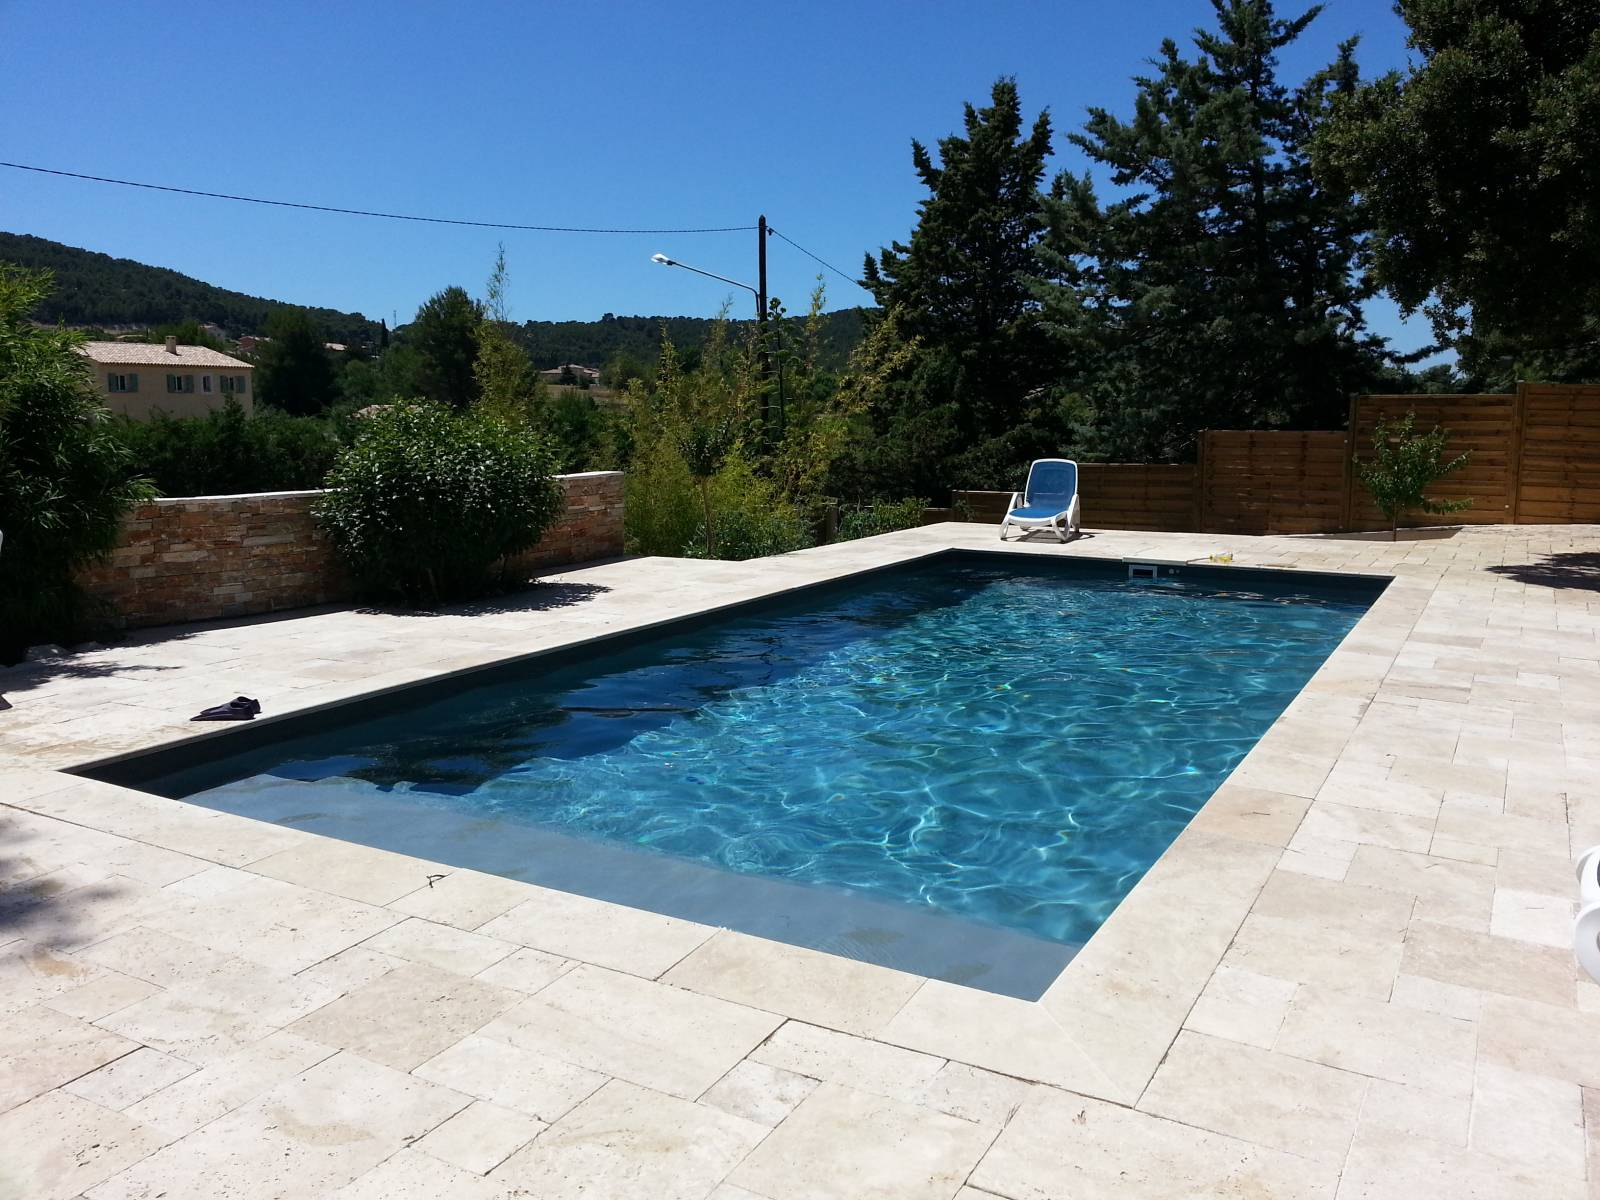 Piscine 9x4m Rectangulaire Gris Anthracite Avec Filtration